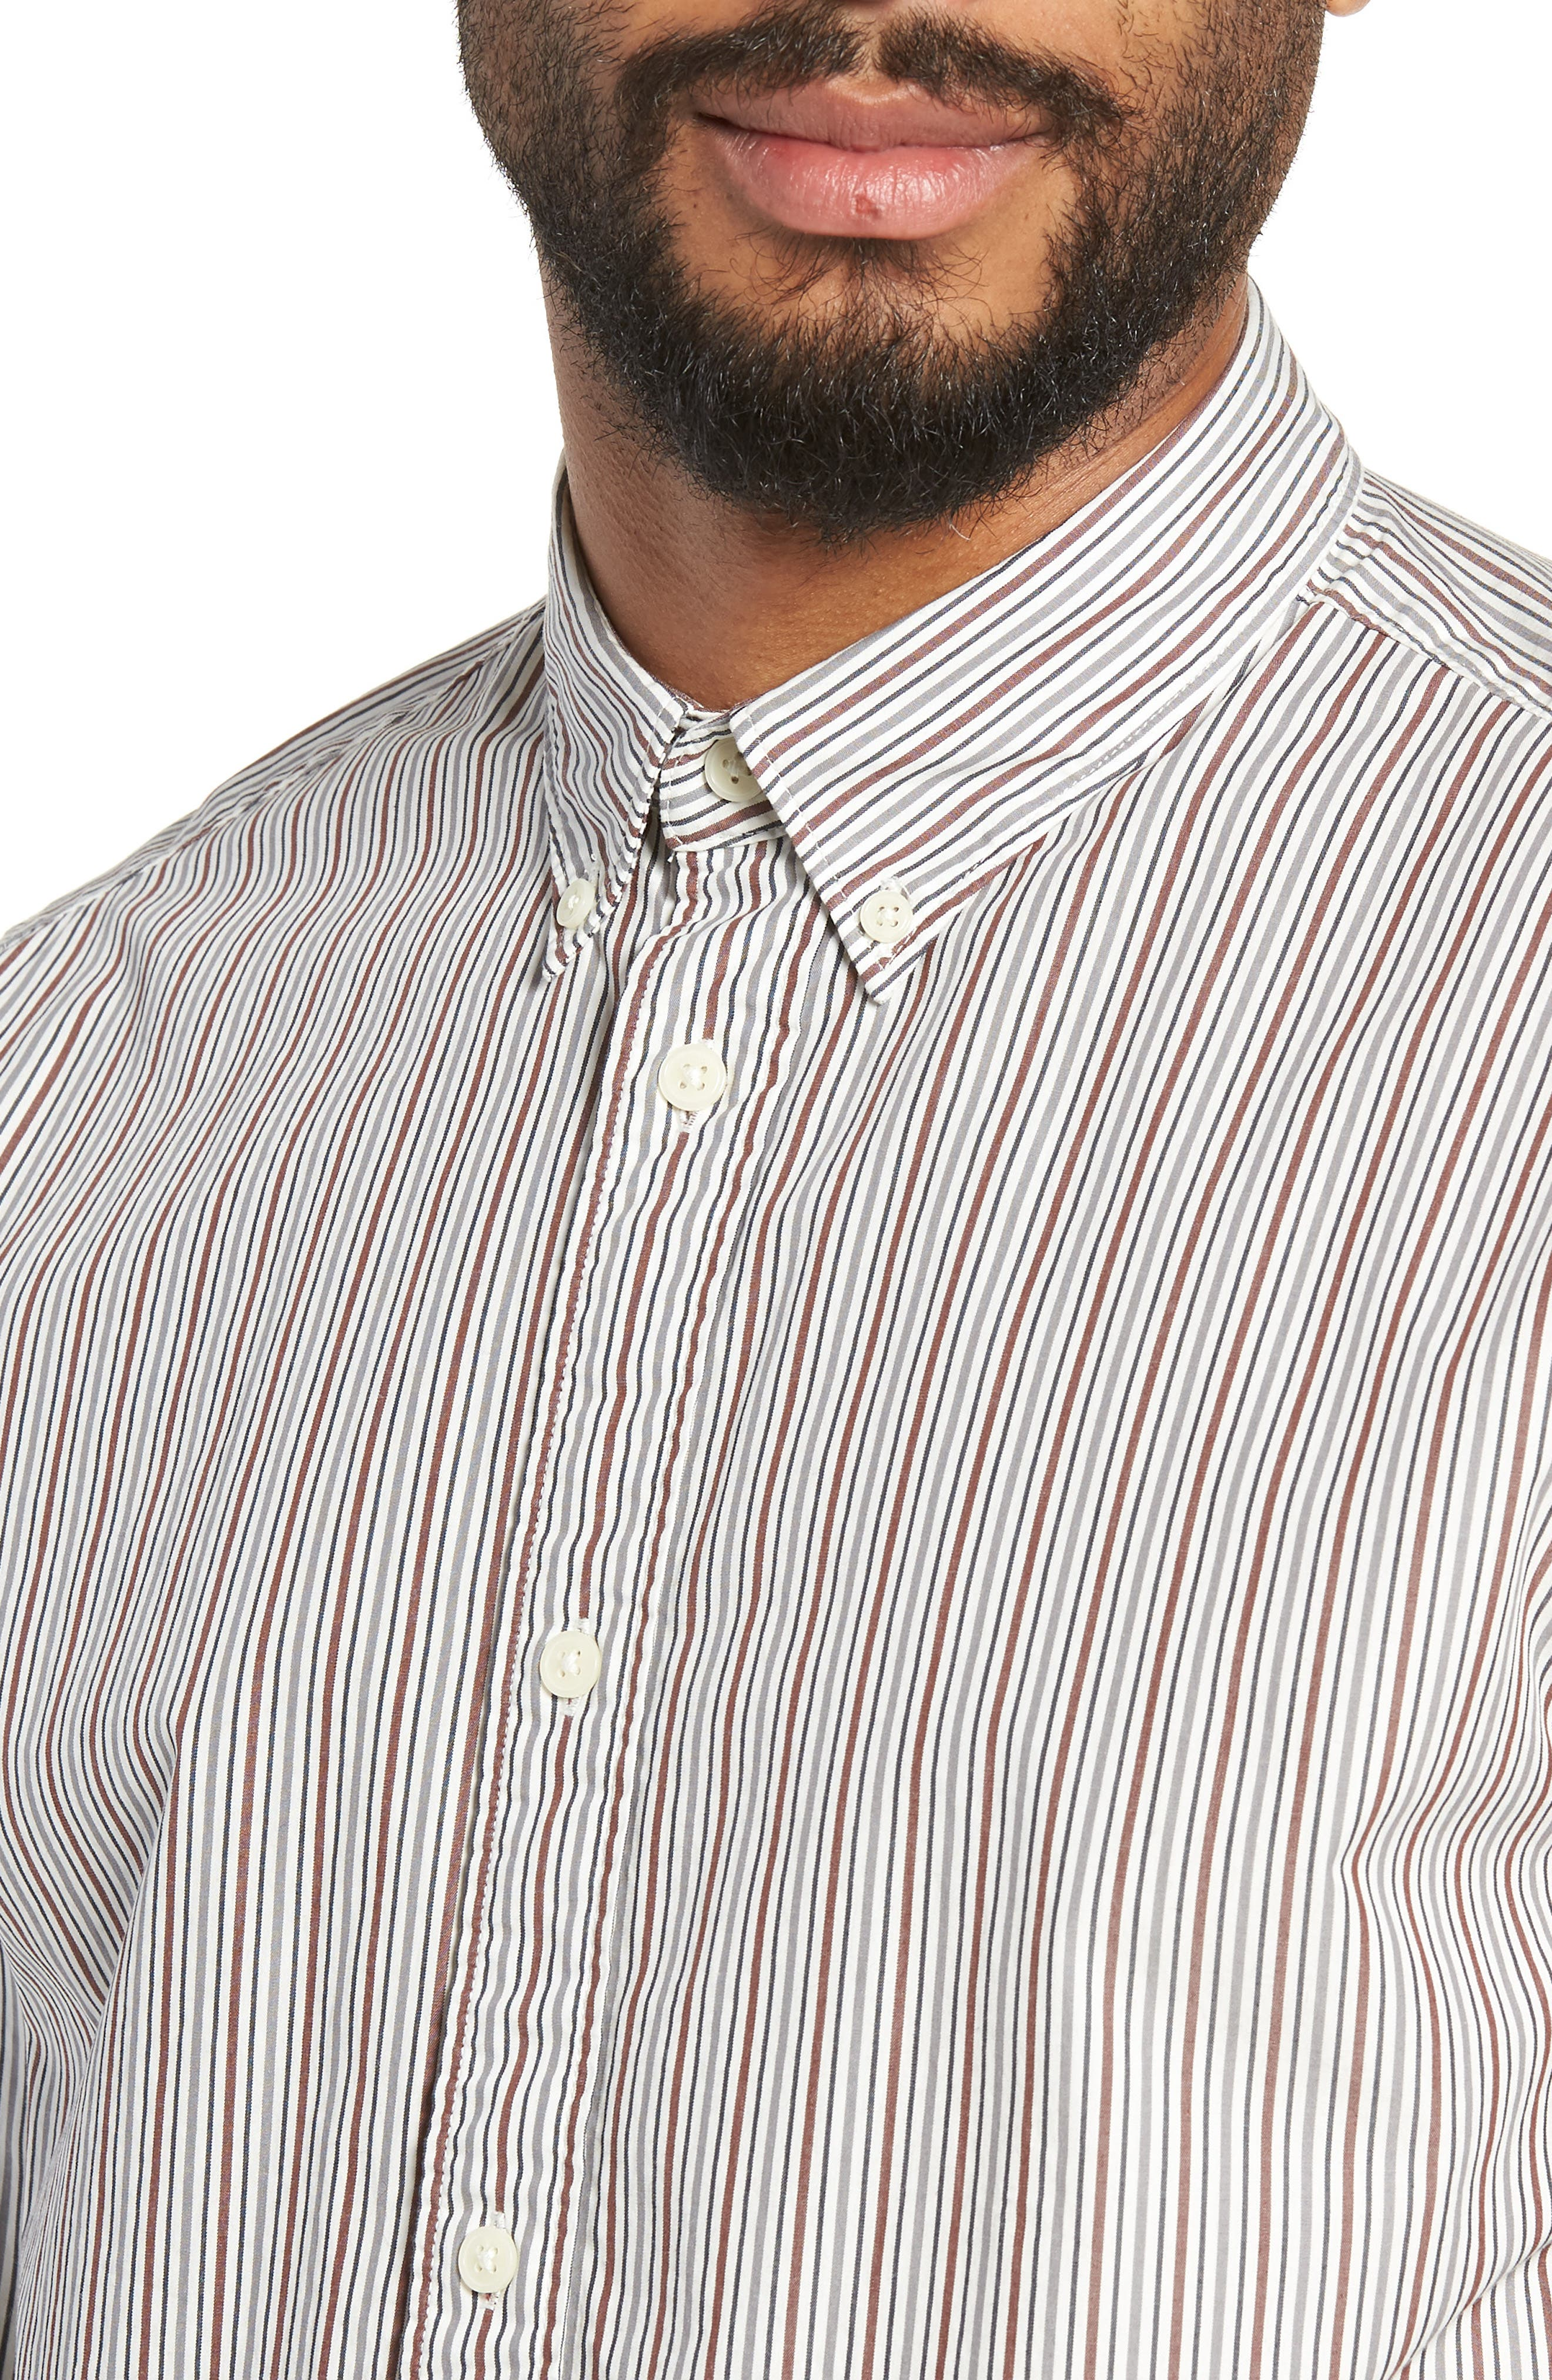 Carlo Regular Fit Stripe Sport Shirt,                             Alternate thumbnail 2, color,                             QUIET SHADE STRIPES